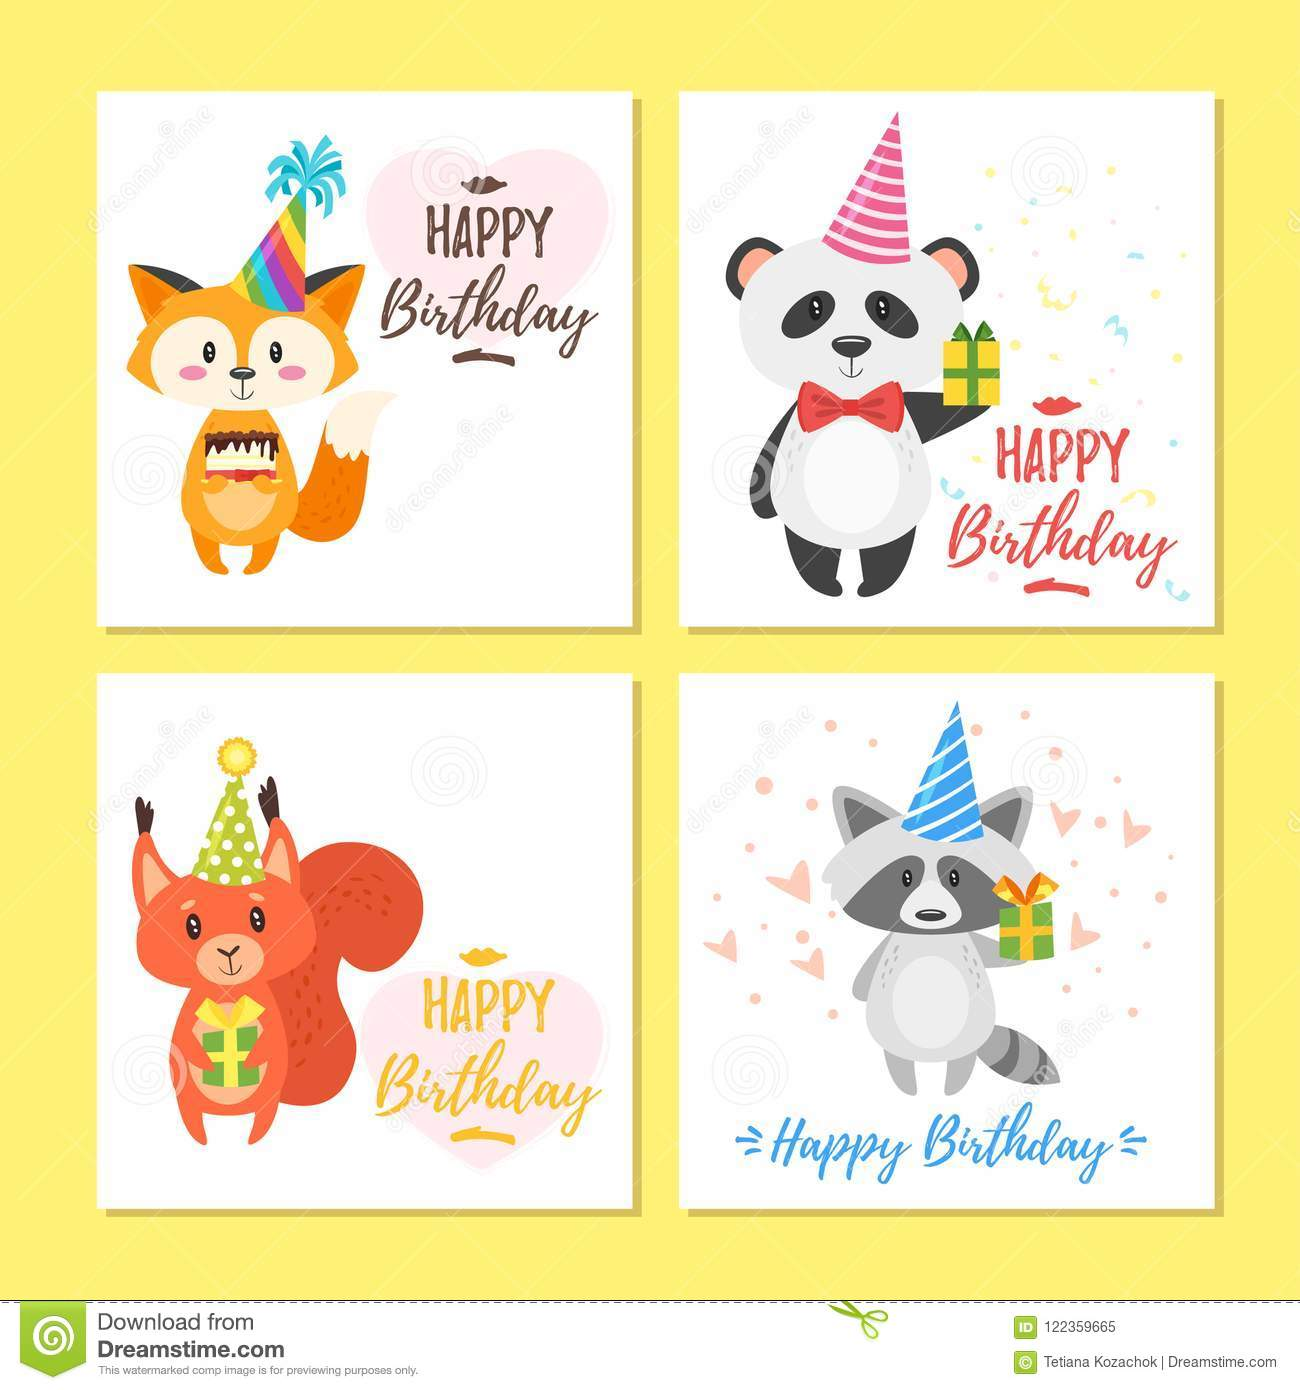 Vector Cartoon Style Set Of Birthday Greeting Cards With Cute Animals And Festive Symbols Isolated On White Background Template For Postcard Print